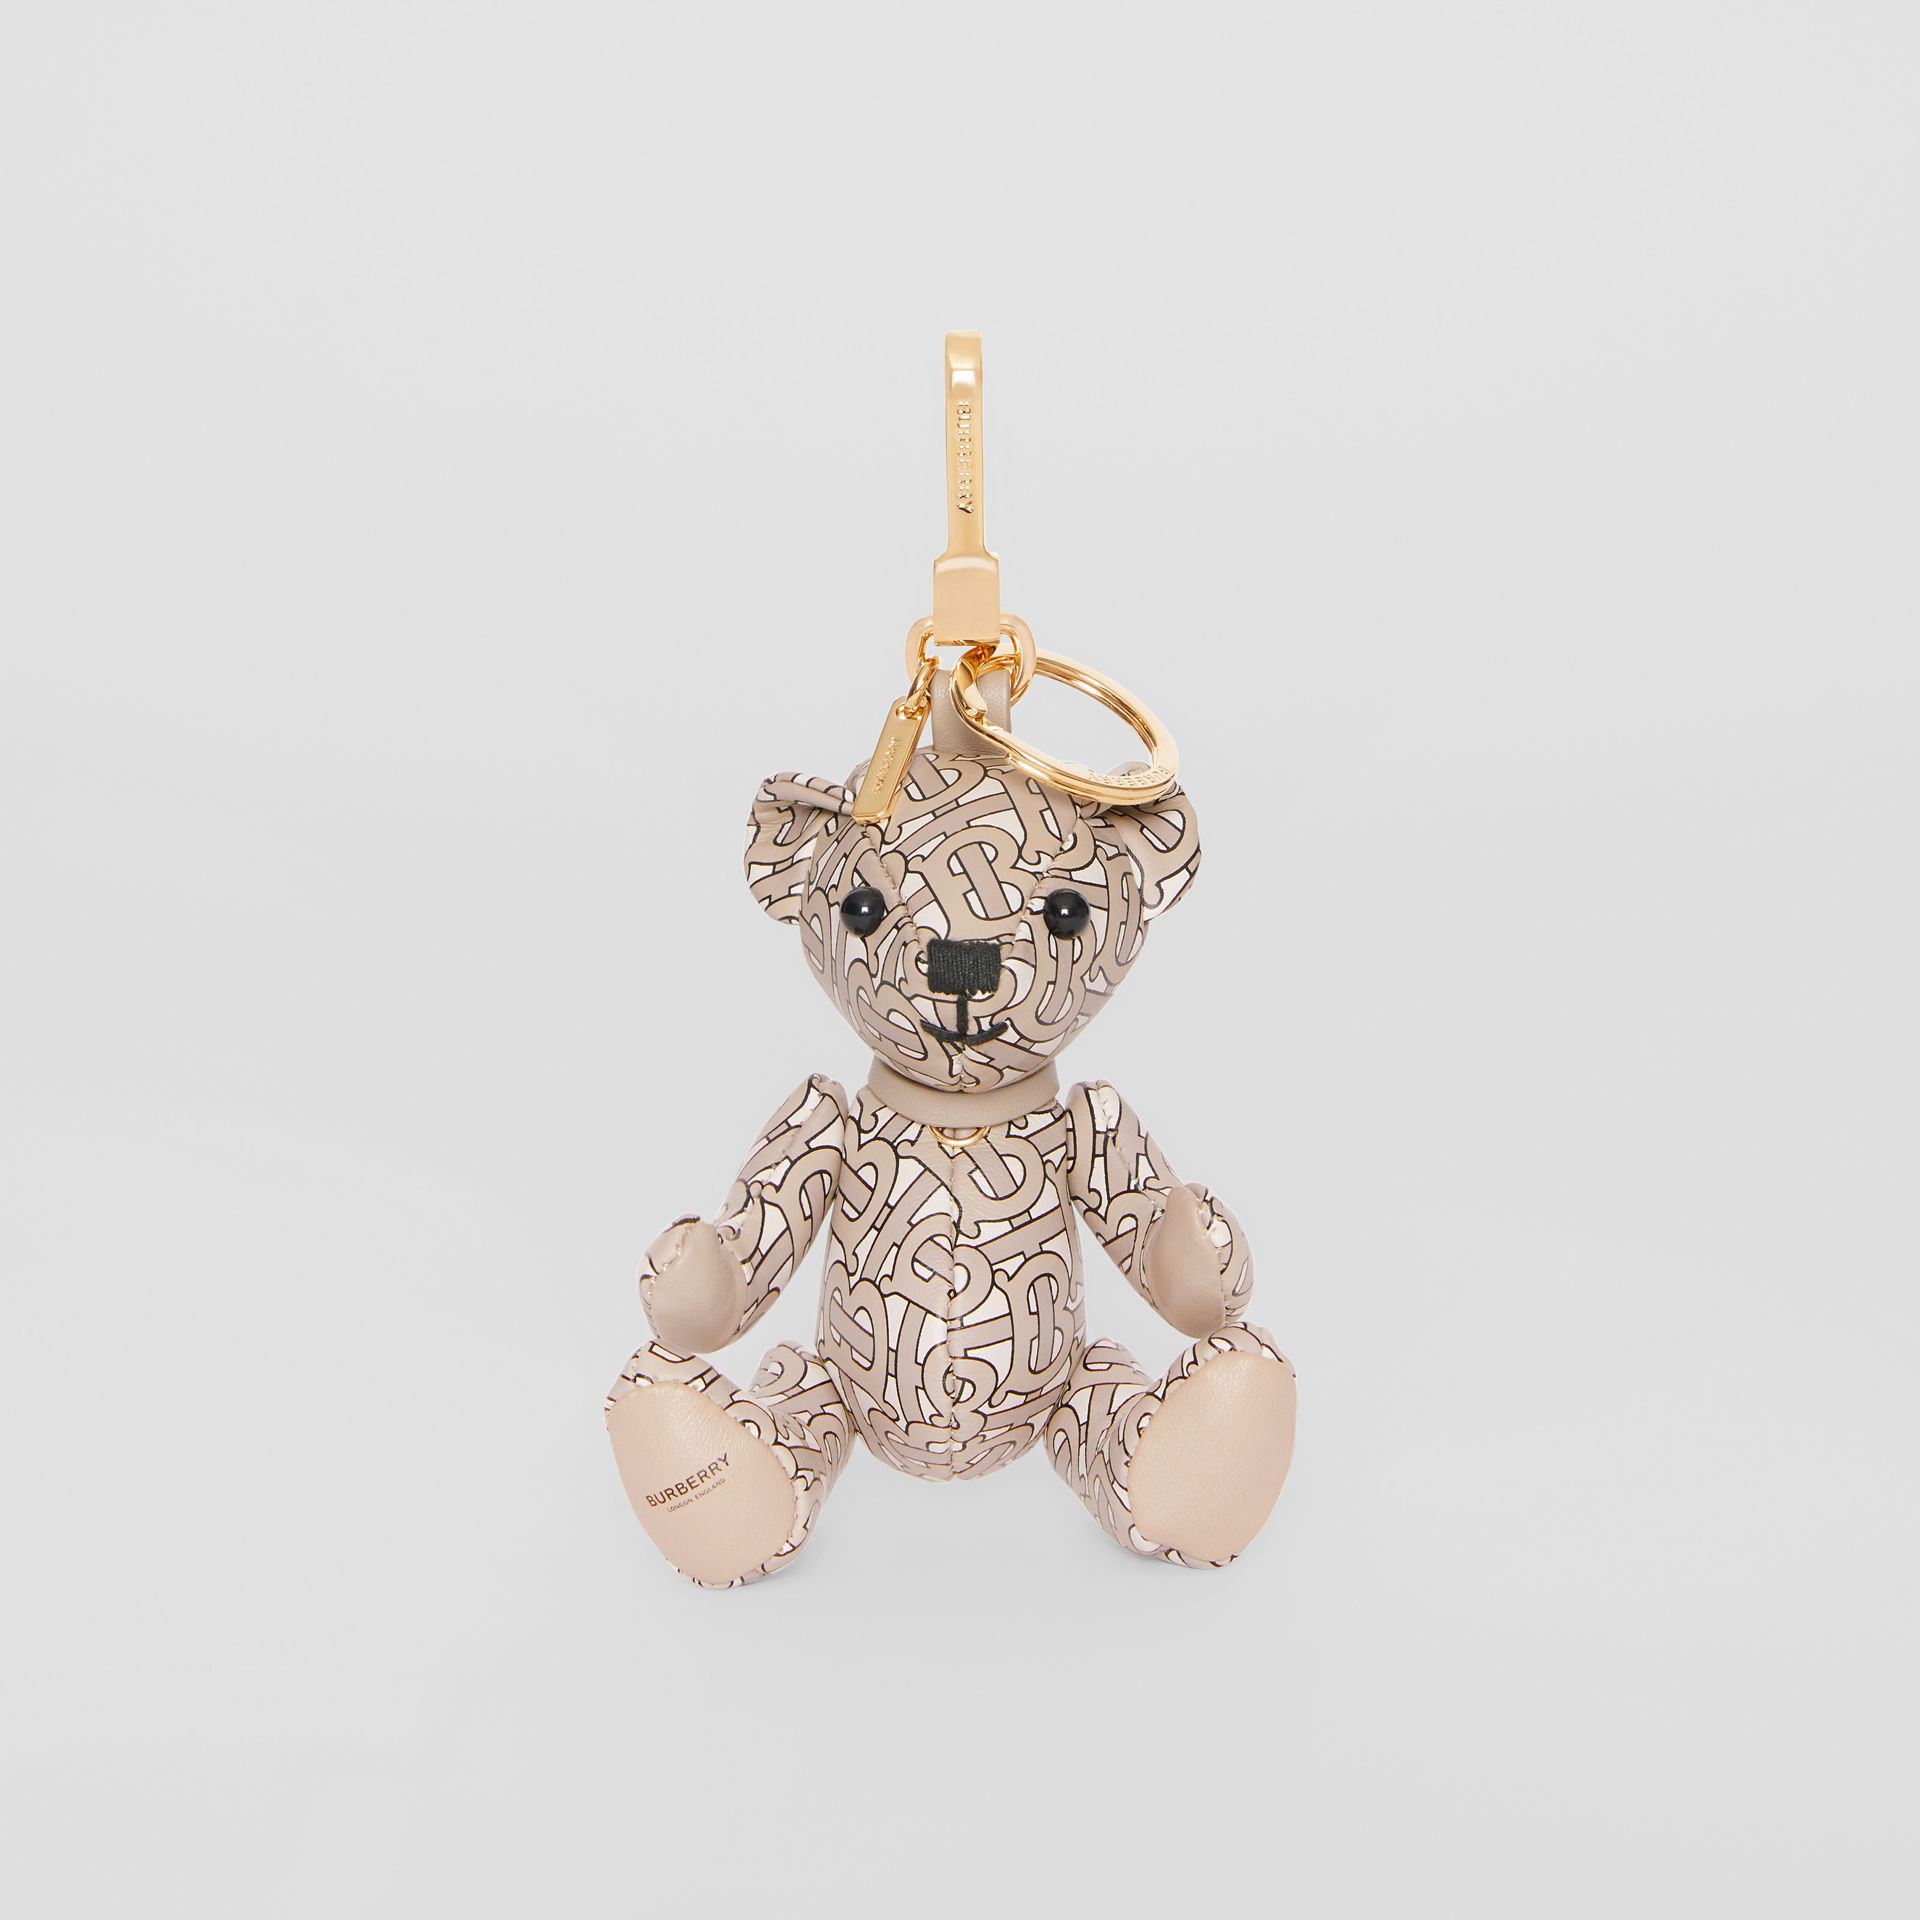 Thomas Bear Charm in Monogram Print Leather in Beige - Women | Burberry Canada - gallery image 2